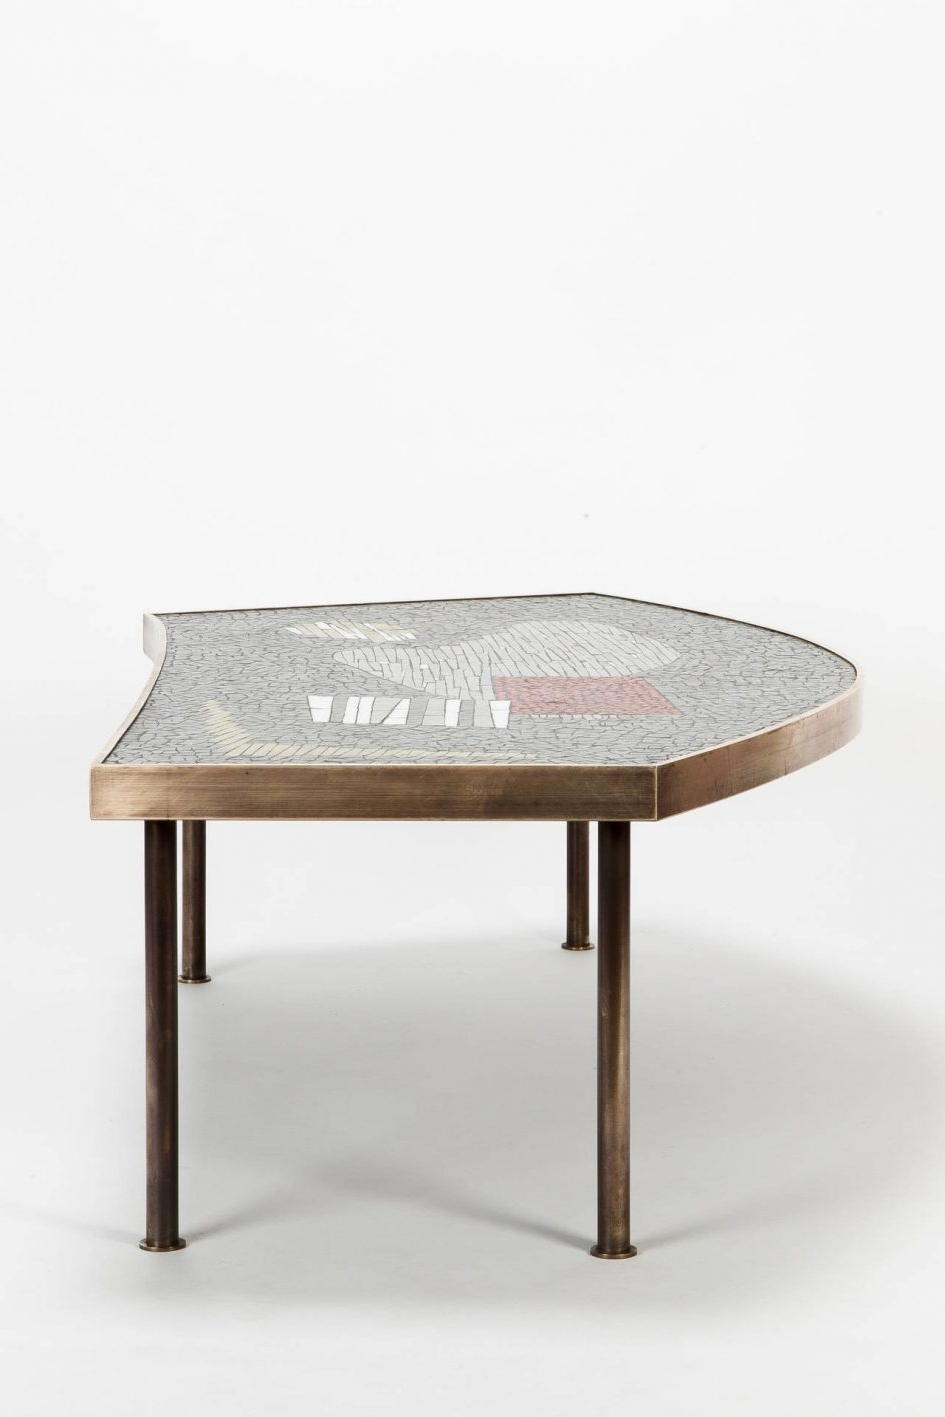 Popular Spanish Coffee Tables Within Apartments (View 12 of 20)